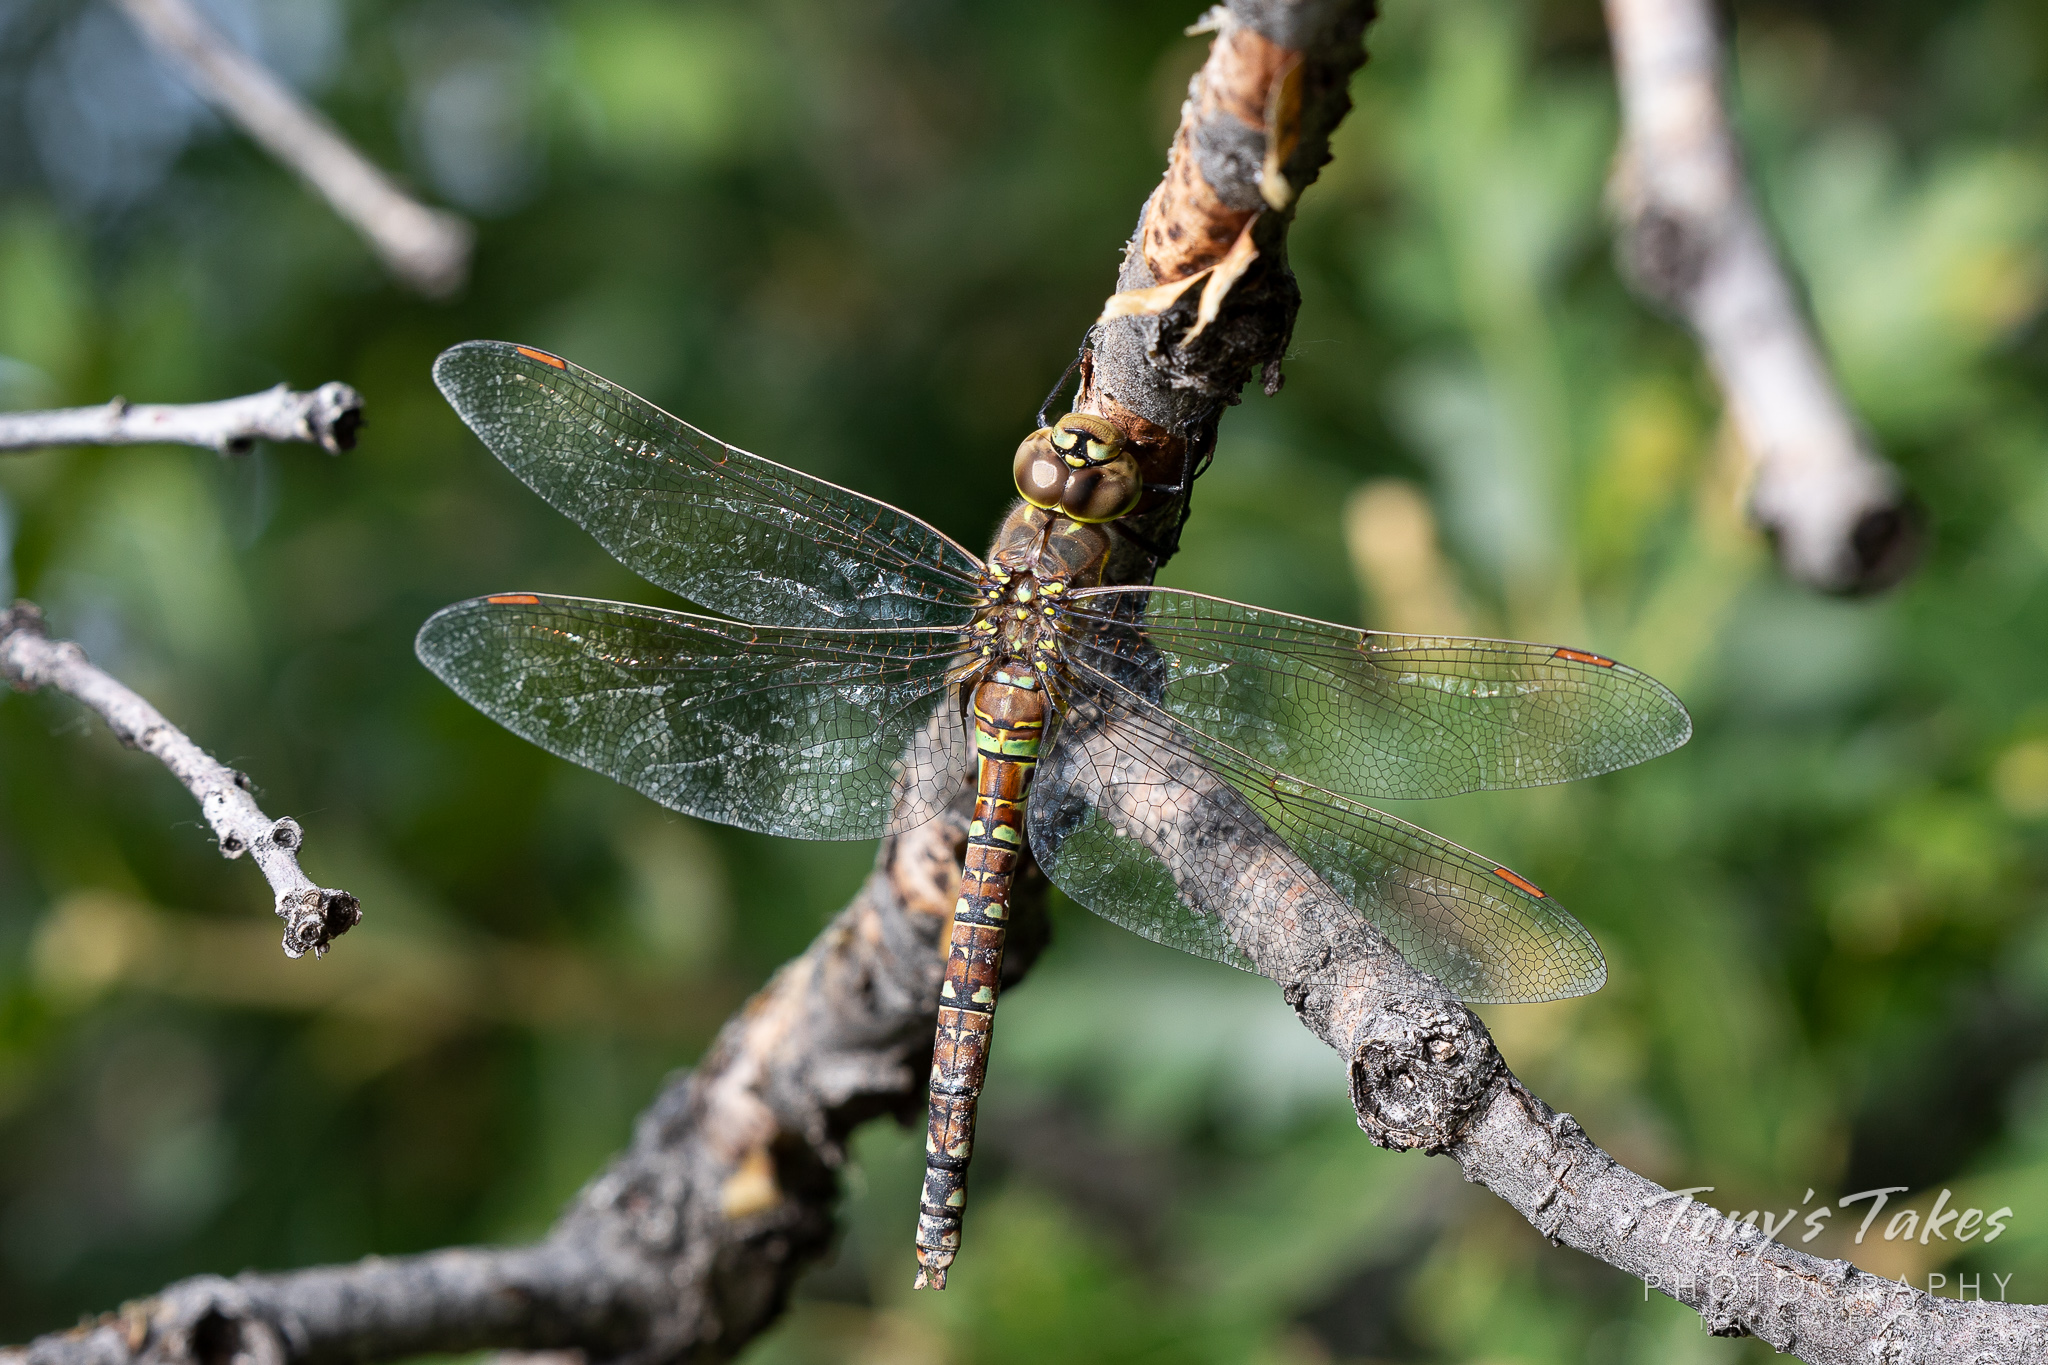 A dragonfly hangs out on a tree branch at Cheyenne Mountain State Park, Colorado. (© Tony's Takes)